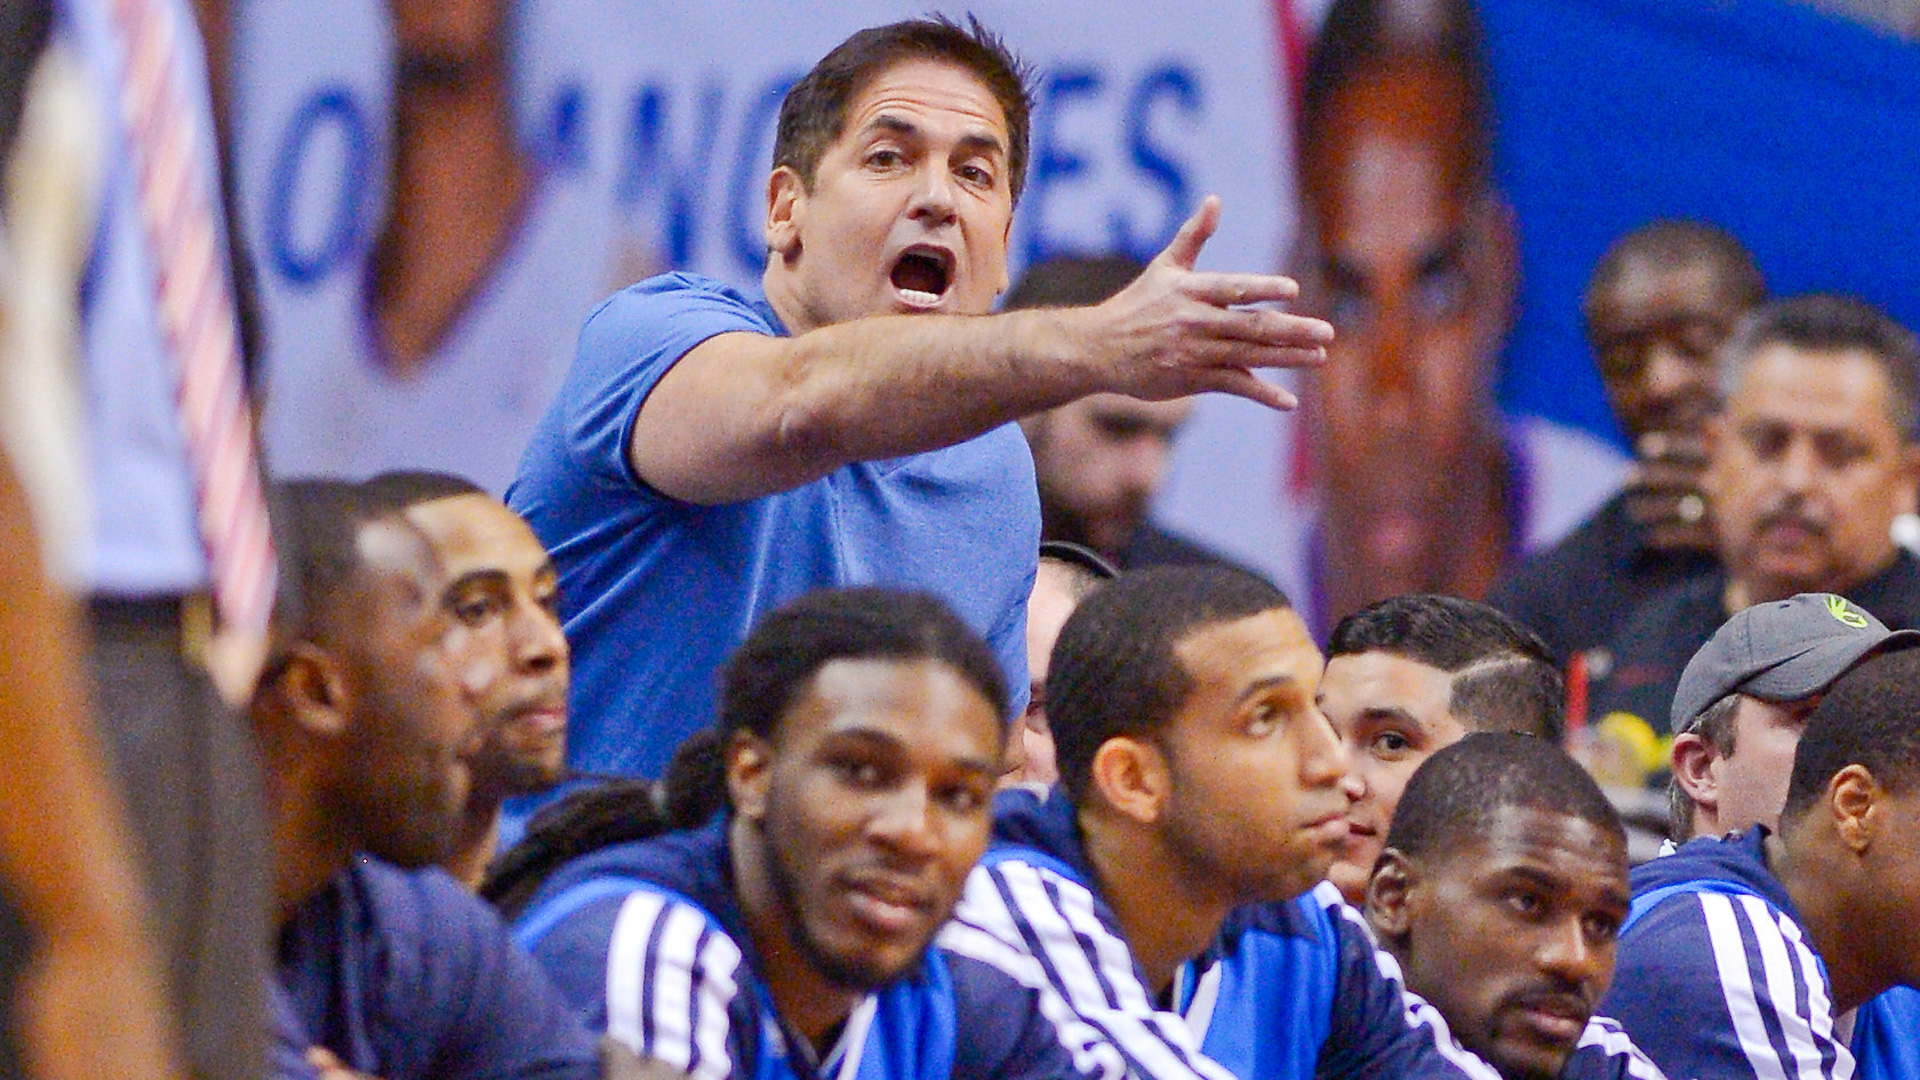 Mark Cuban-022414-AP-FTR.jpg